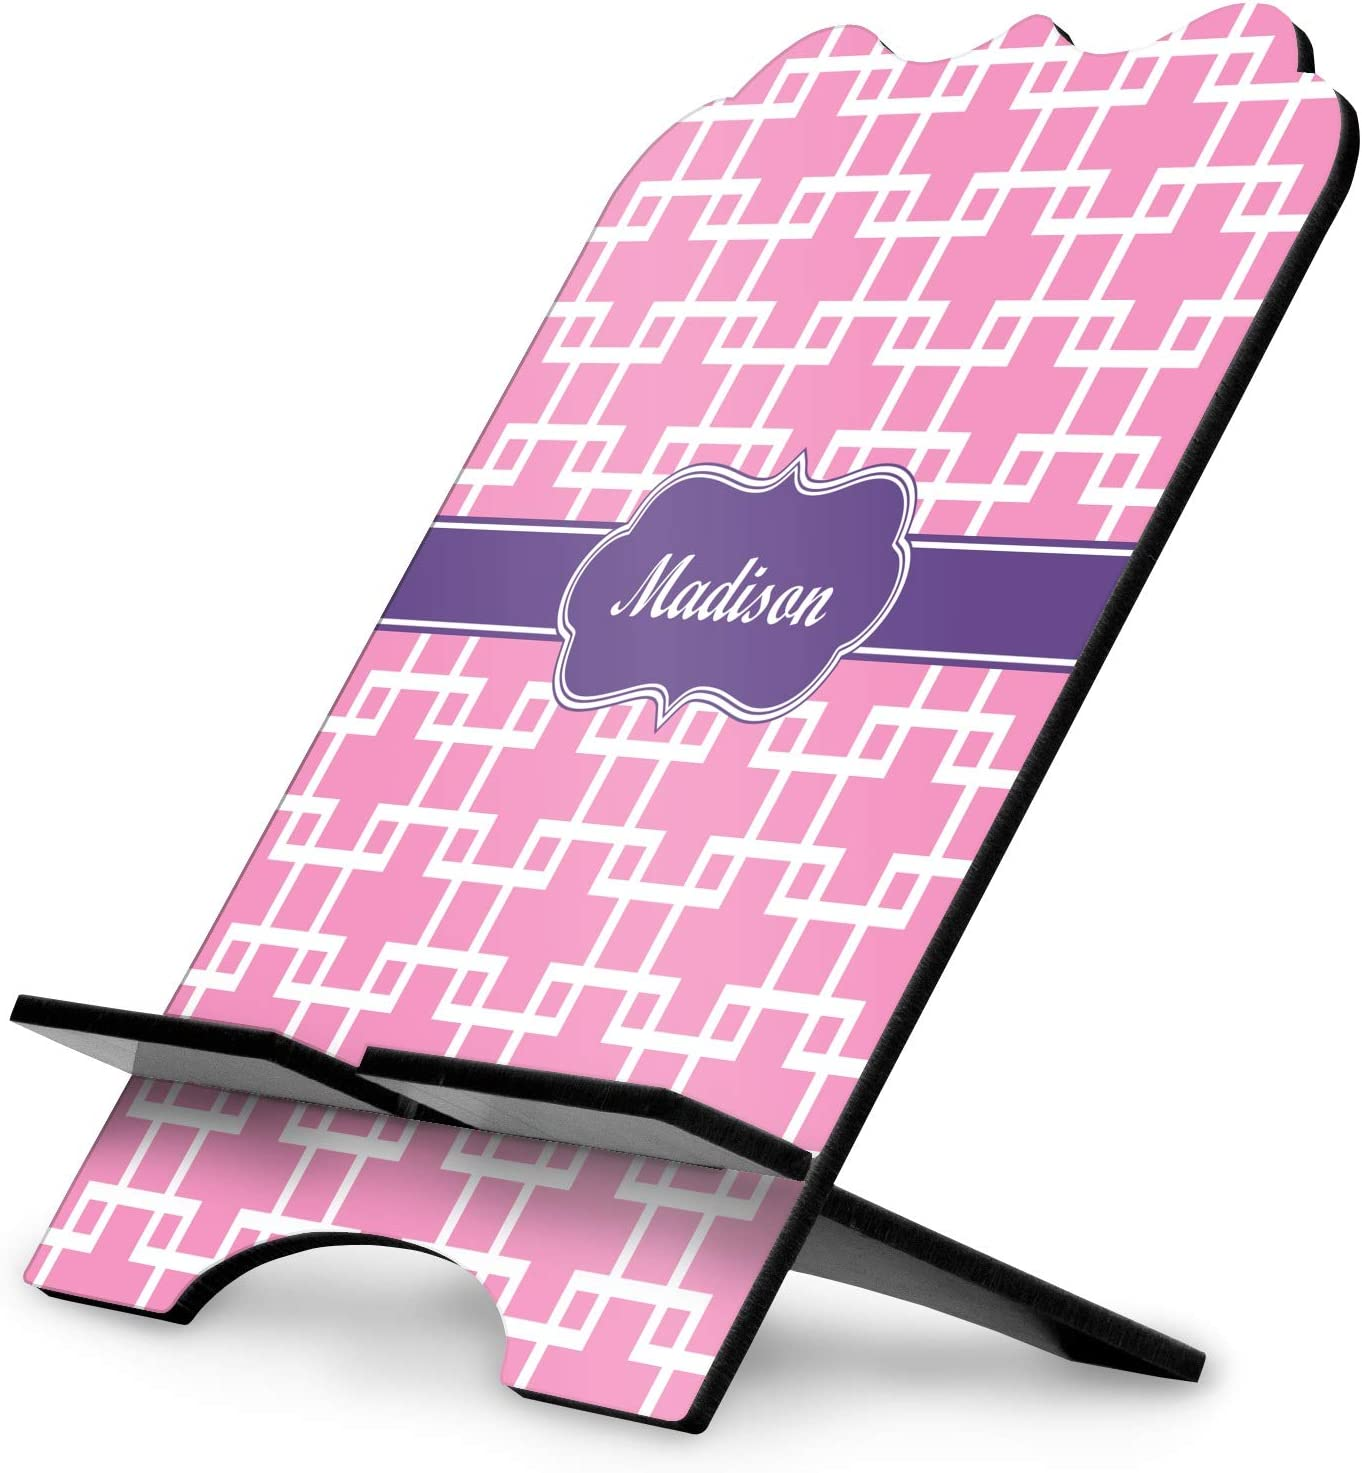 YouCustomizeIt Linked Squares Stylized Tablet Stand Personalized